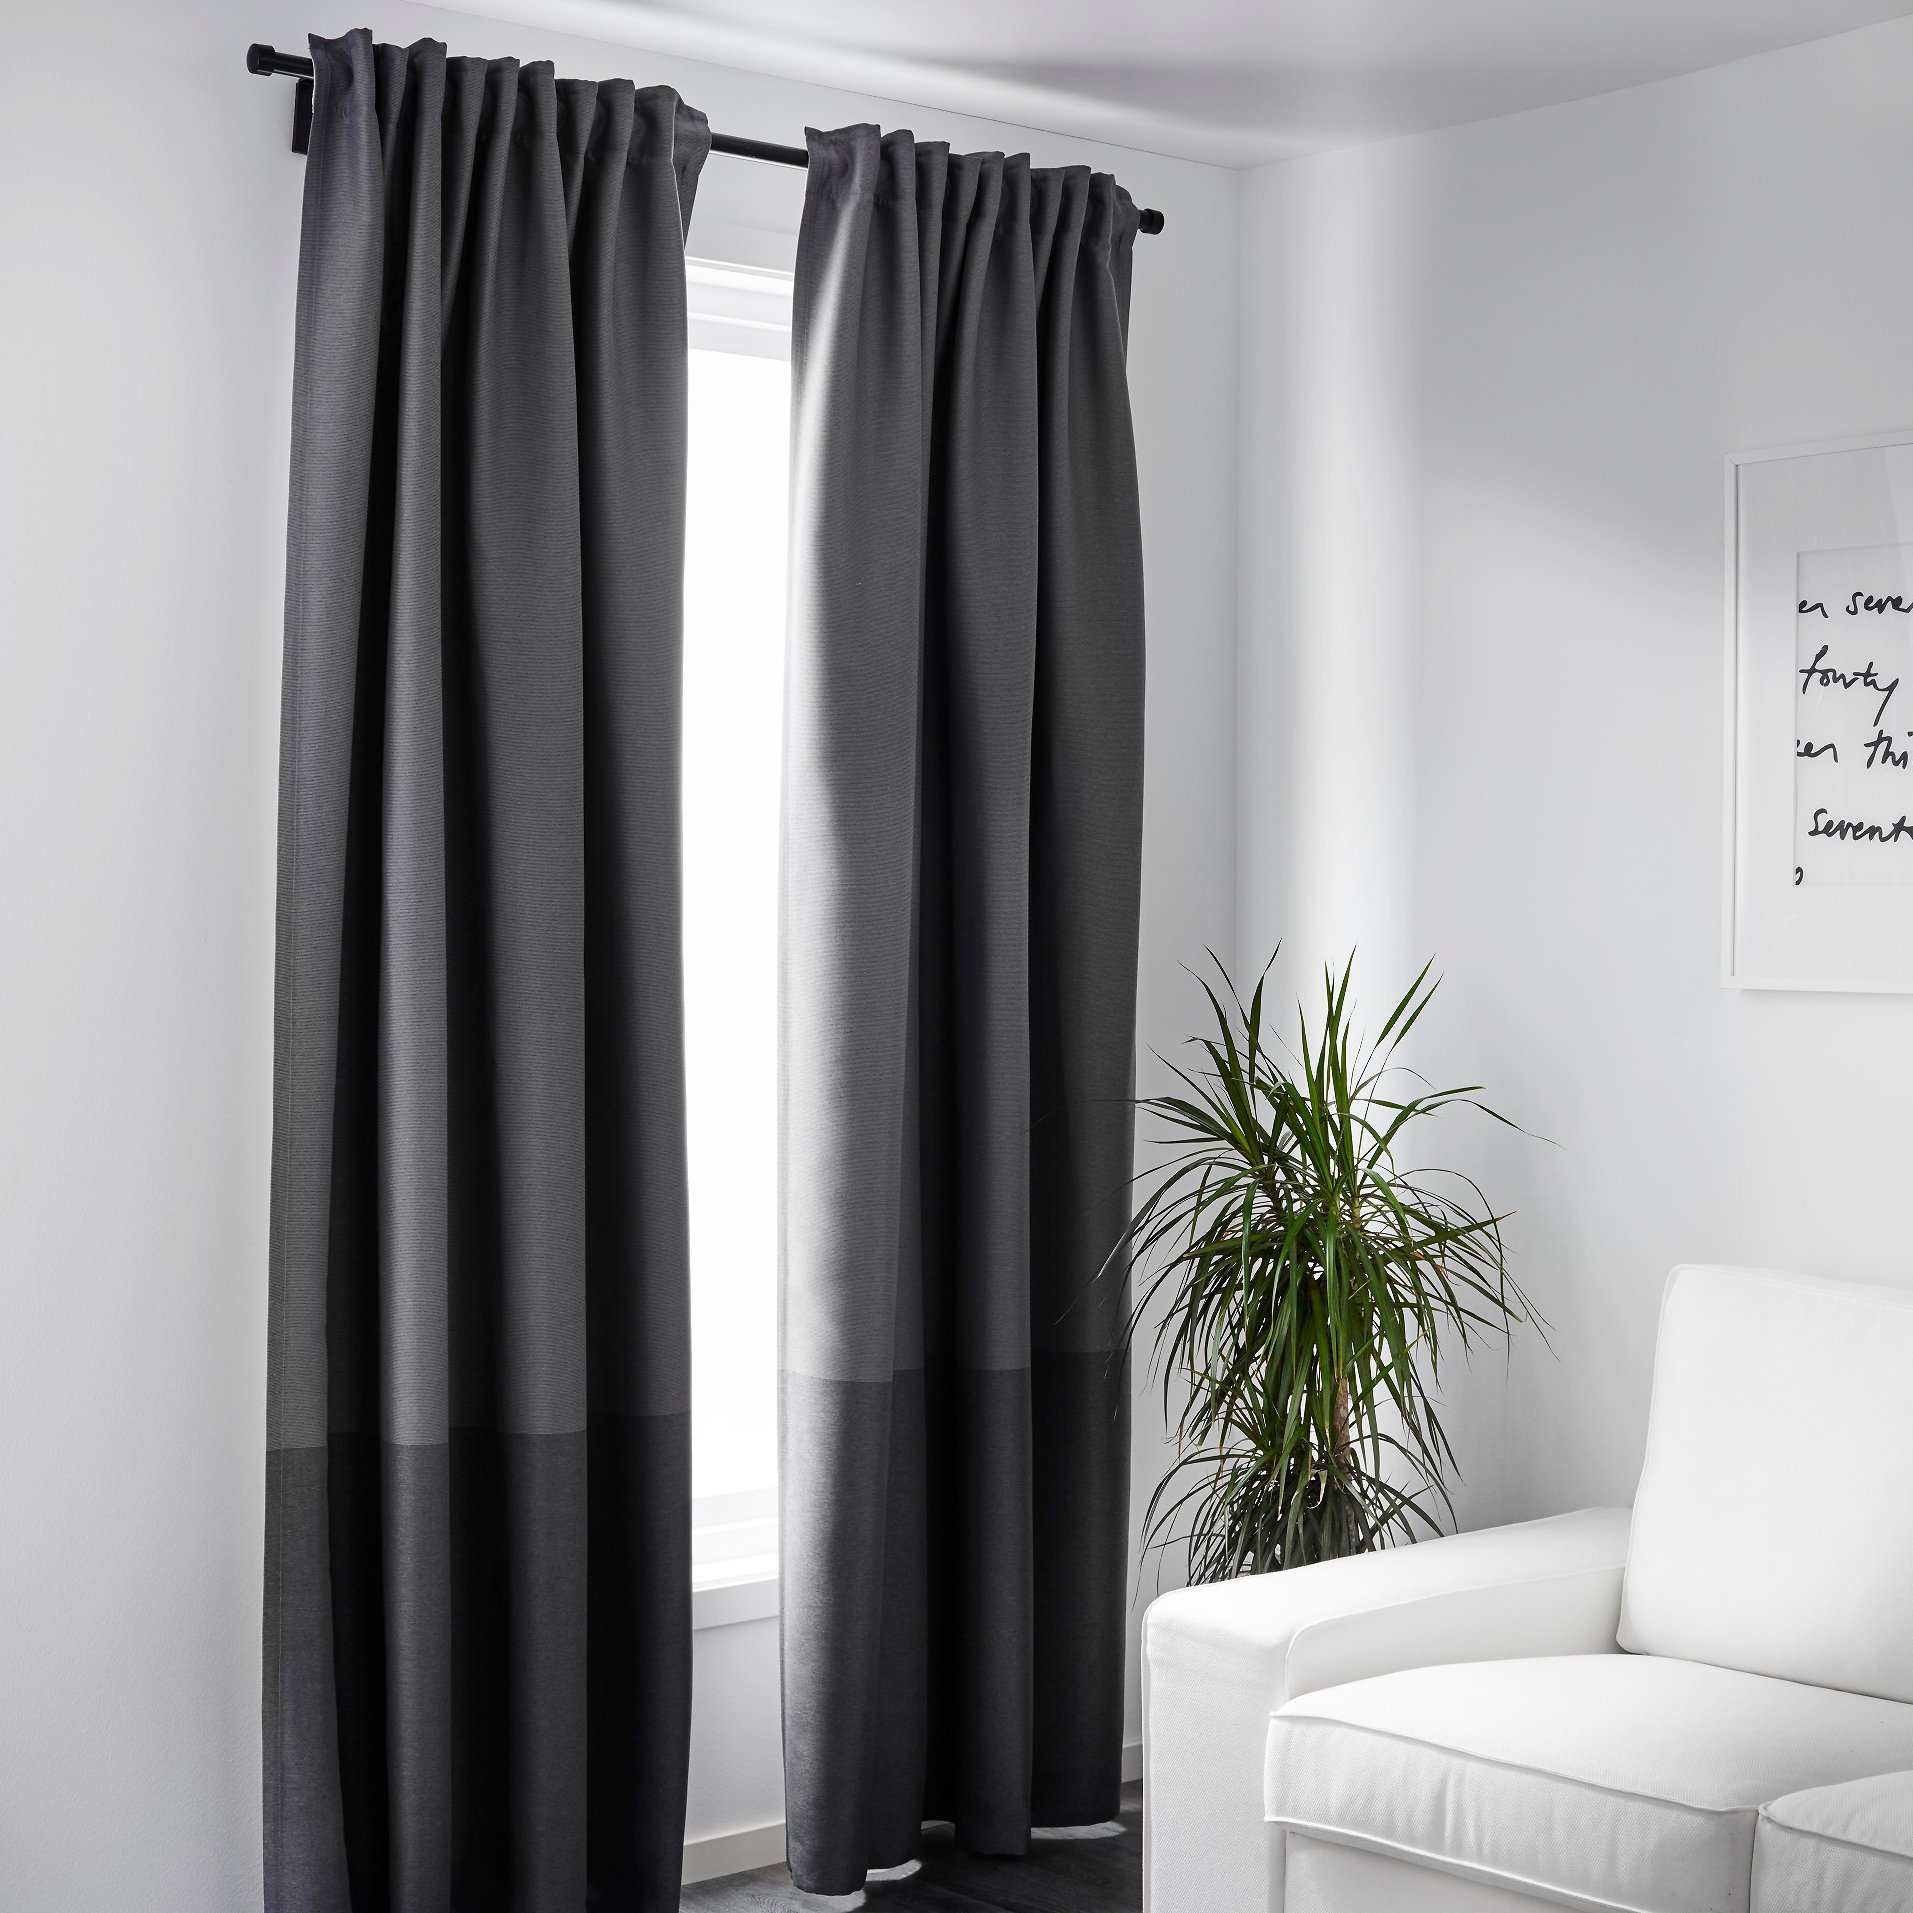 Cheap Blackout Curtains | Black and White Blackout Curtains | Short Blackout Curtains